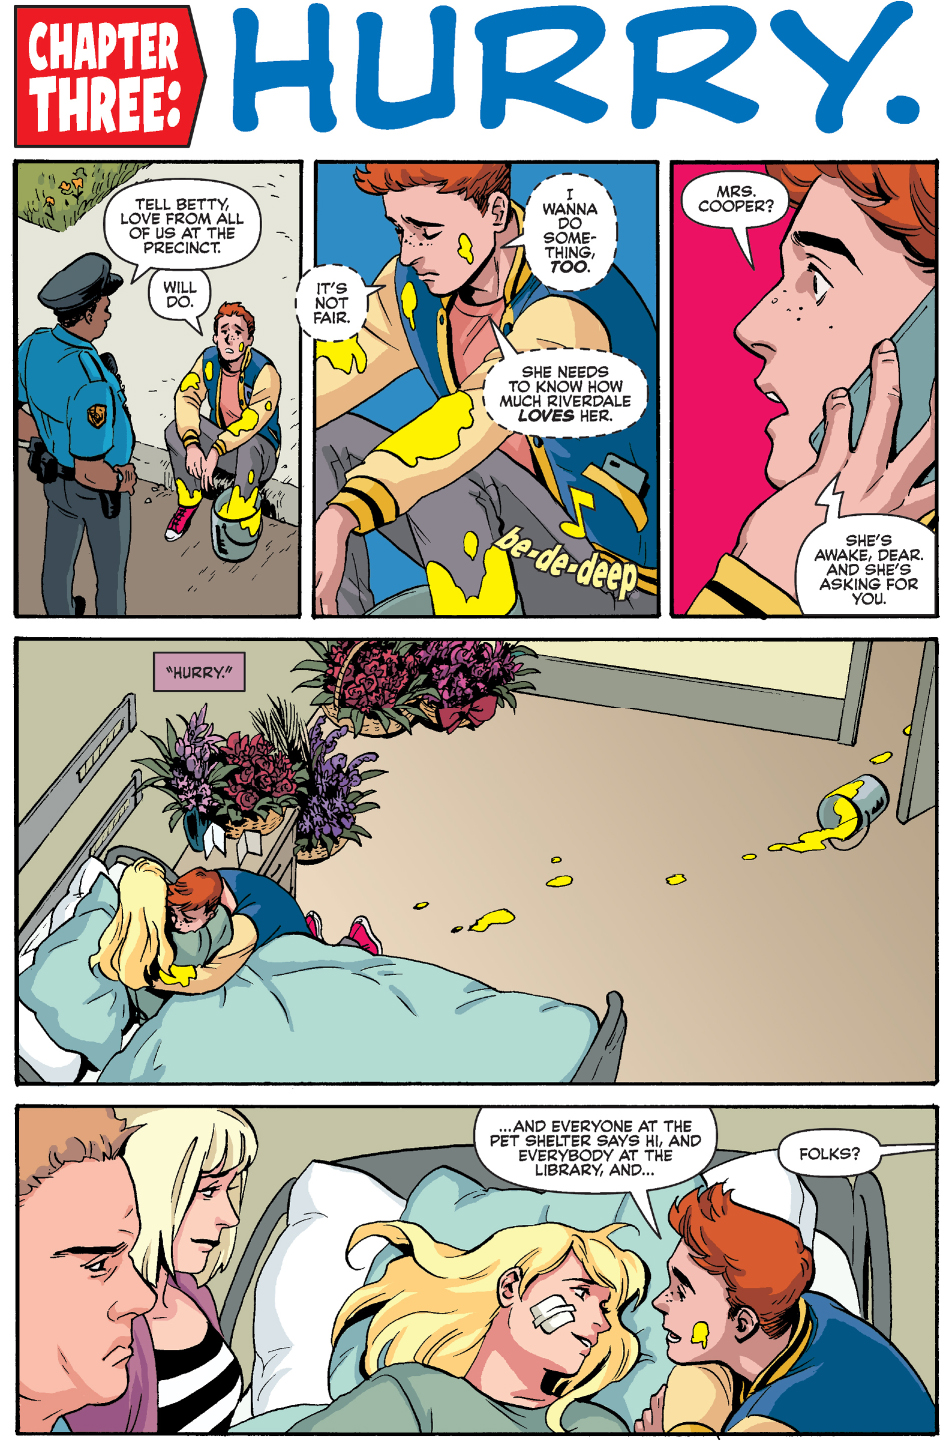 Betty Cooper Is Paralyzed Comicnewbies